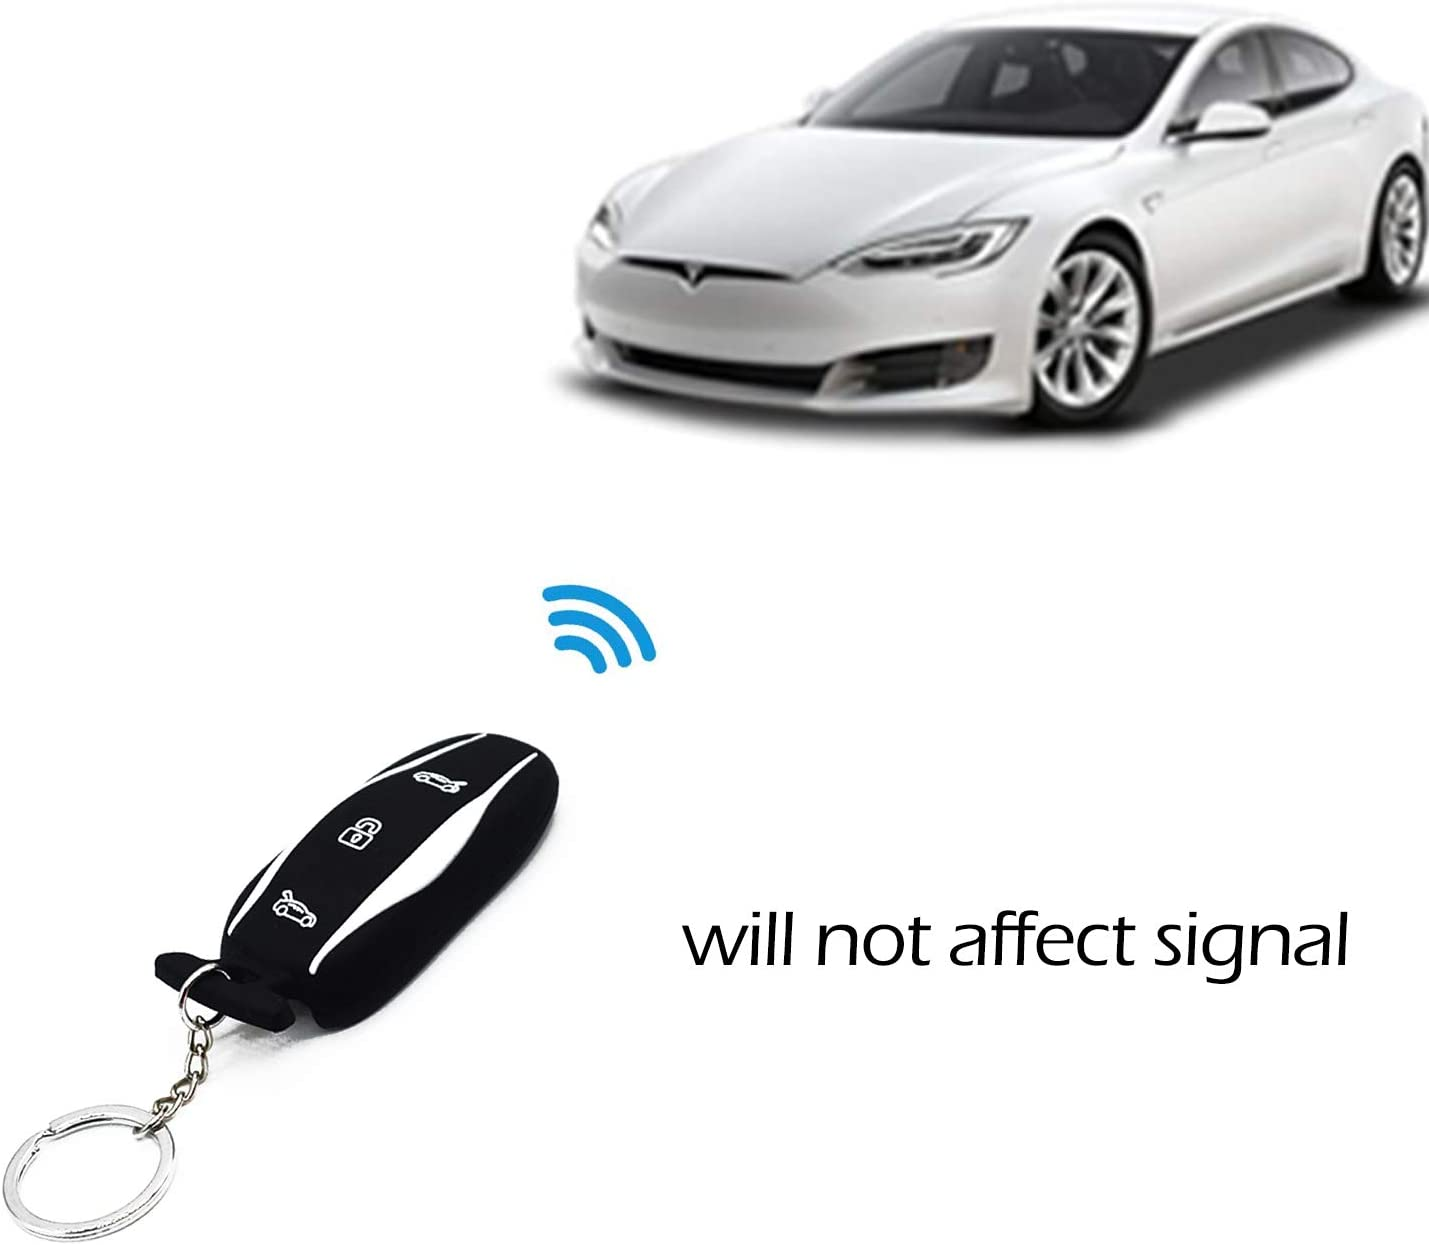 Black Car Key Fob Cover,Silicone Auto Remote Key Fob Protector Case Holder for Tesla Model 3